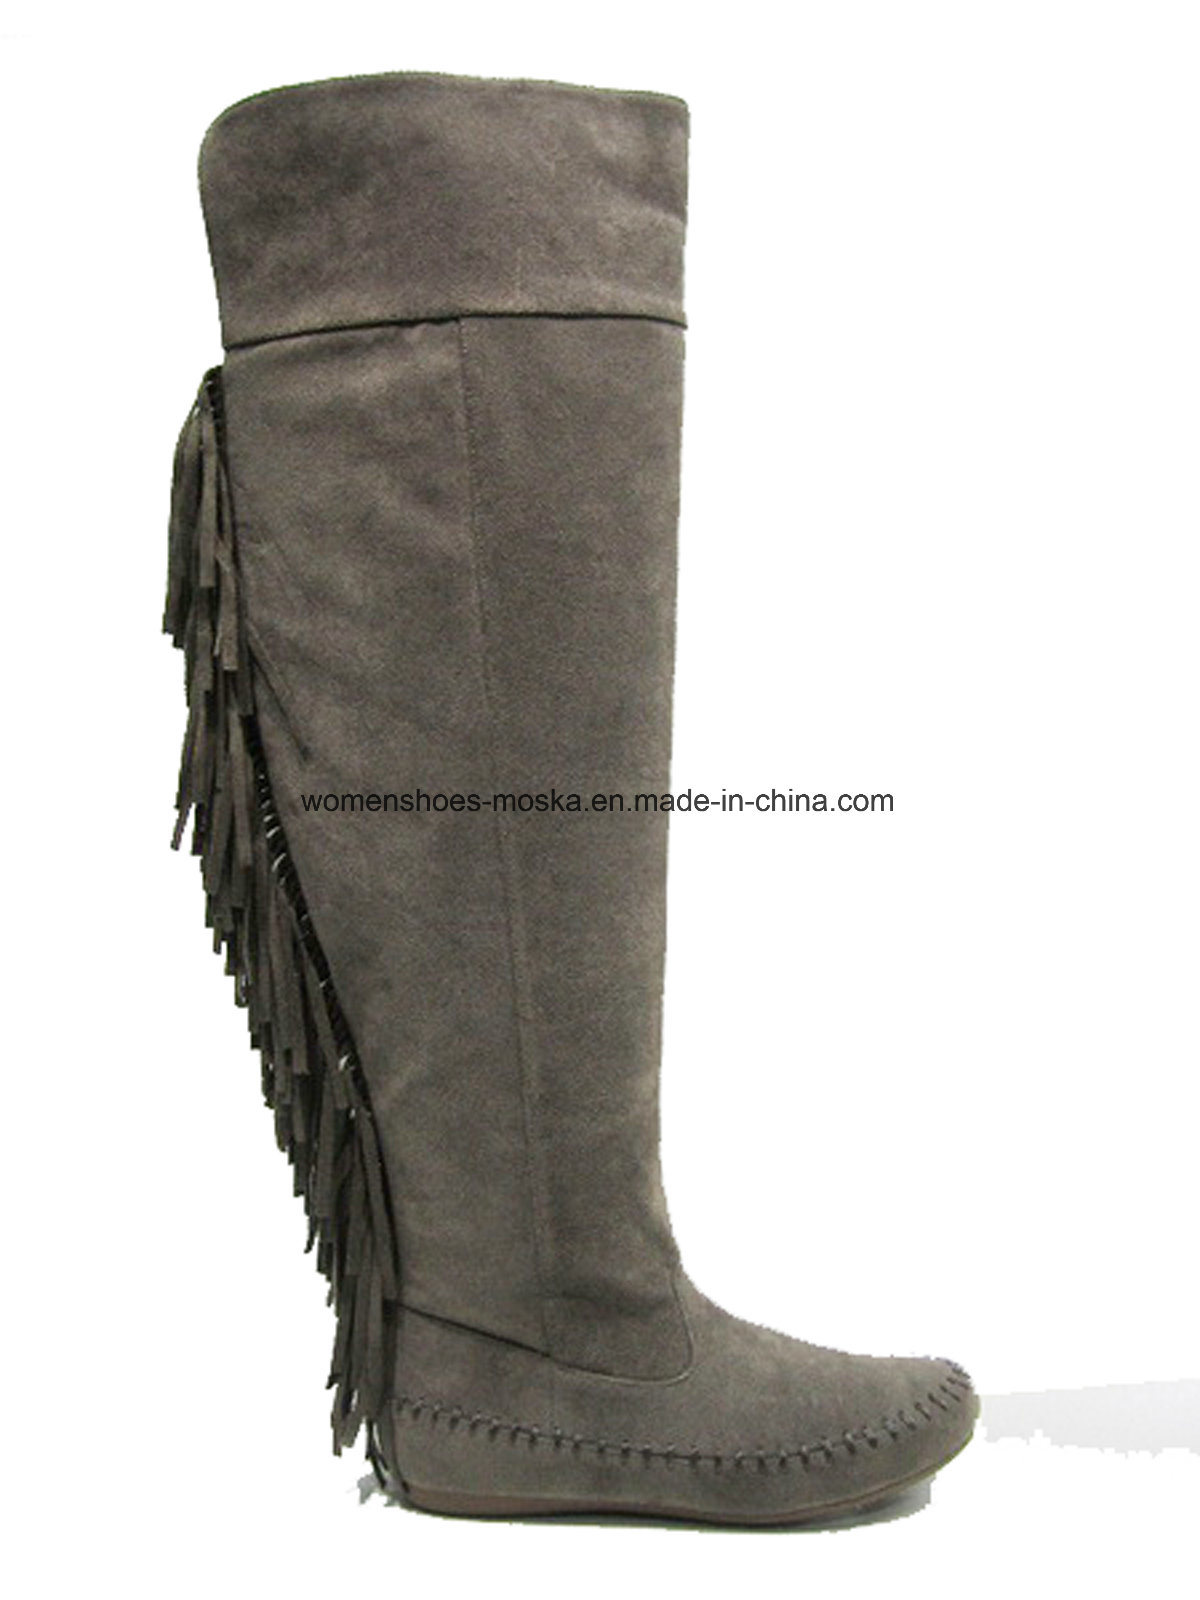 New Fashion Women Flat Heel Overknee Boots with Tassels